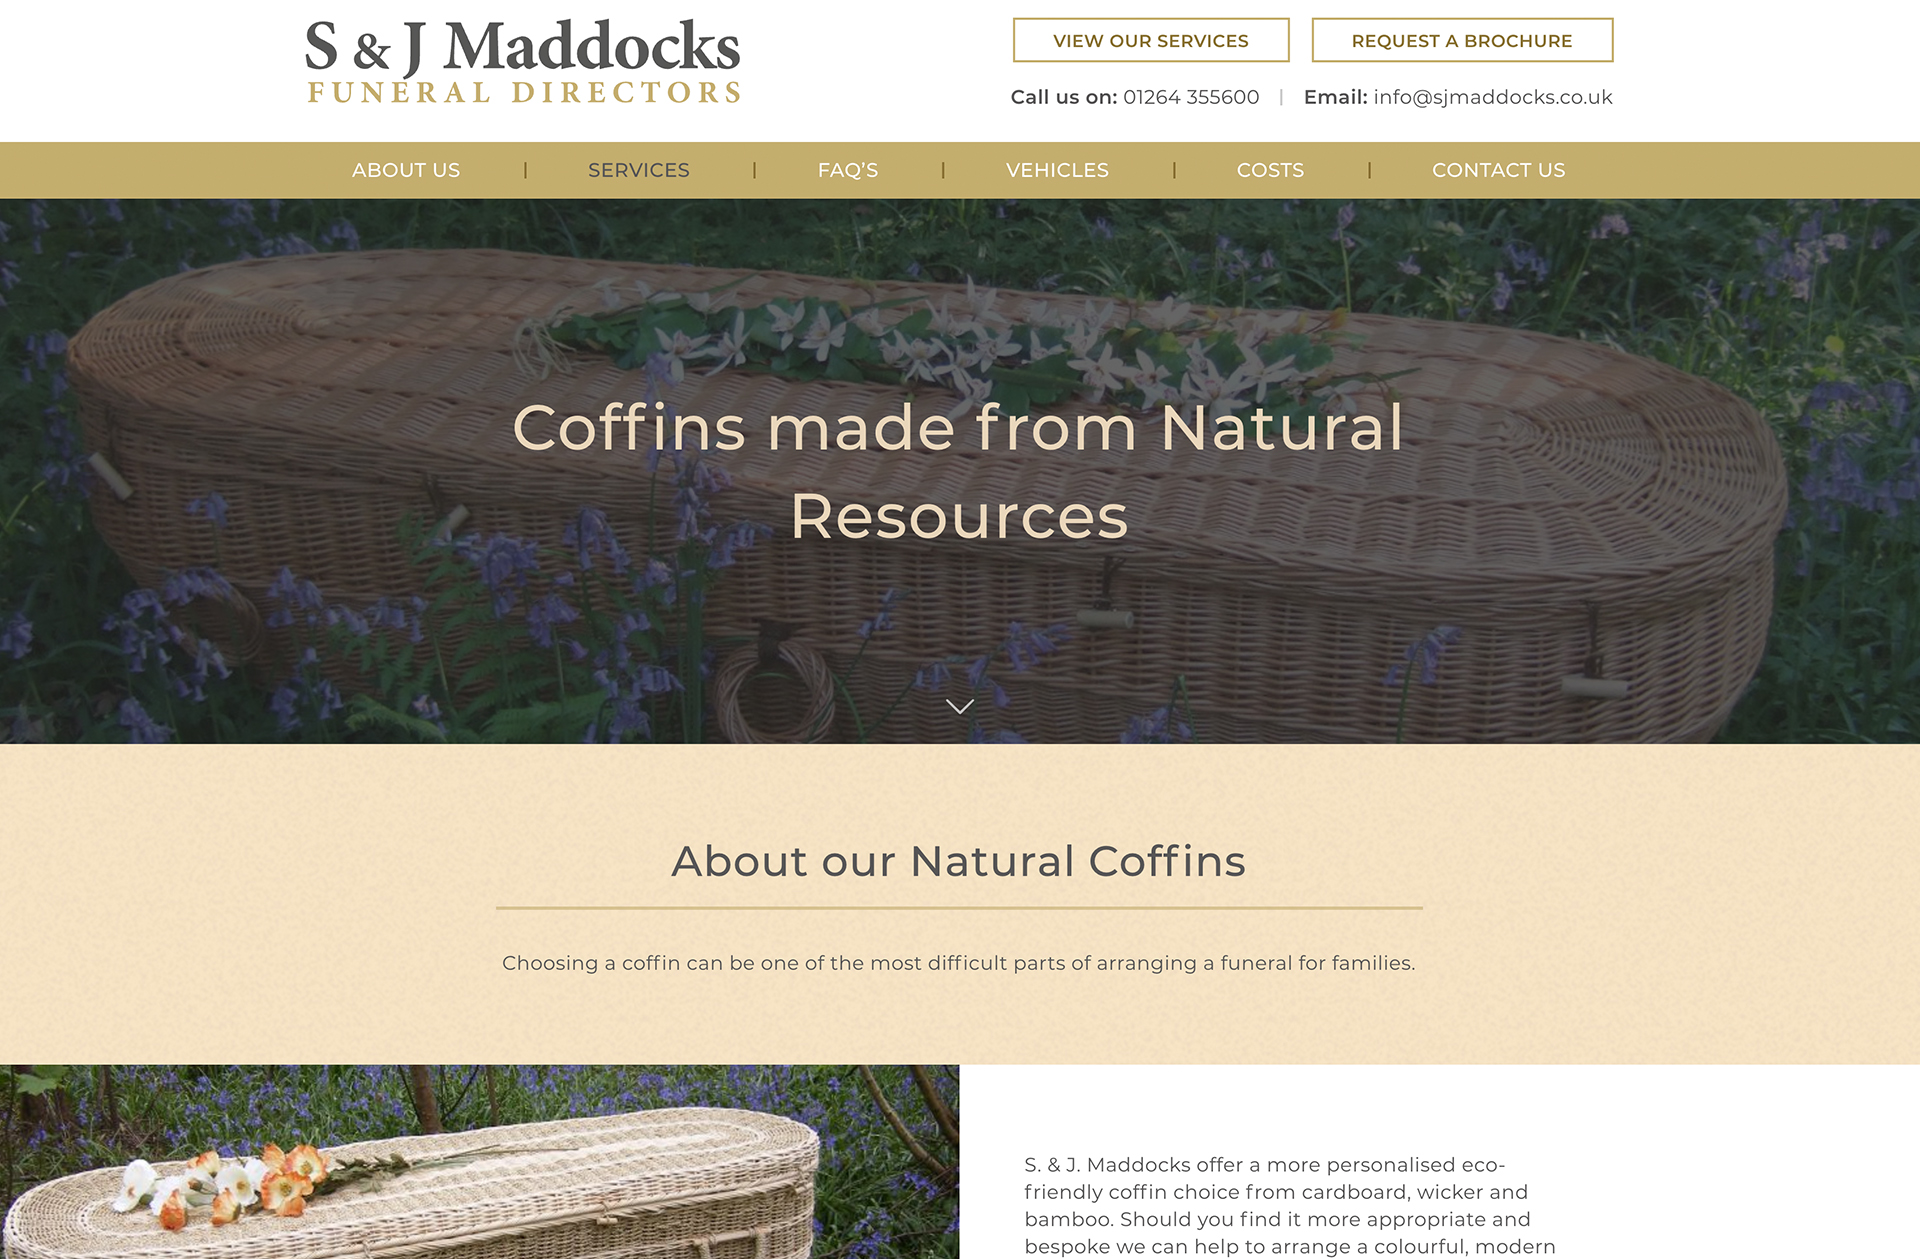 SJ Maddocks Website Design